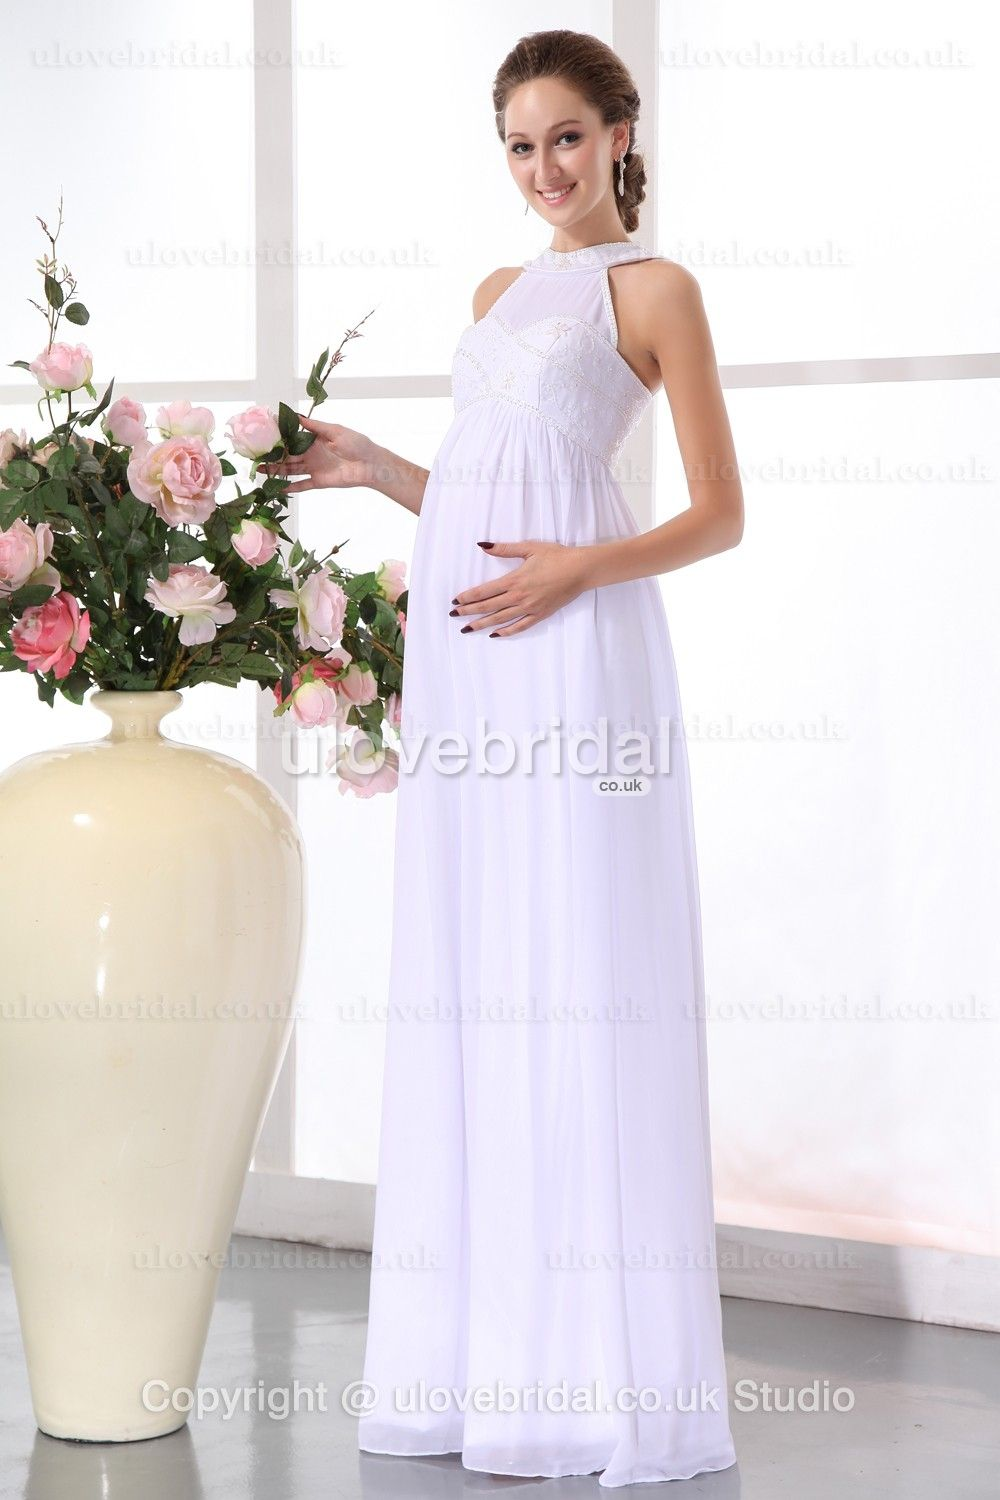 White maternity wedding dress  Cheap Simple New For Maternity Chiffon White Wedding Gown  wedding